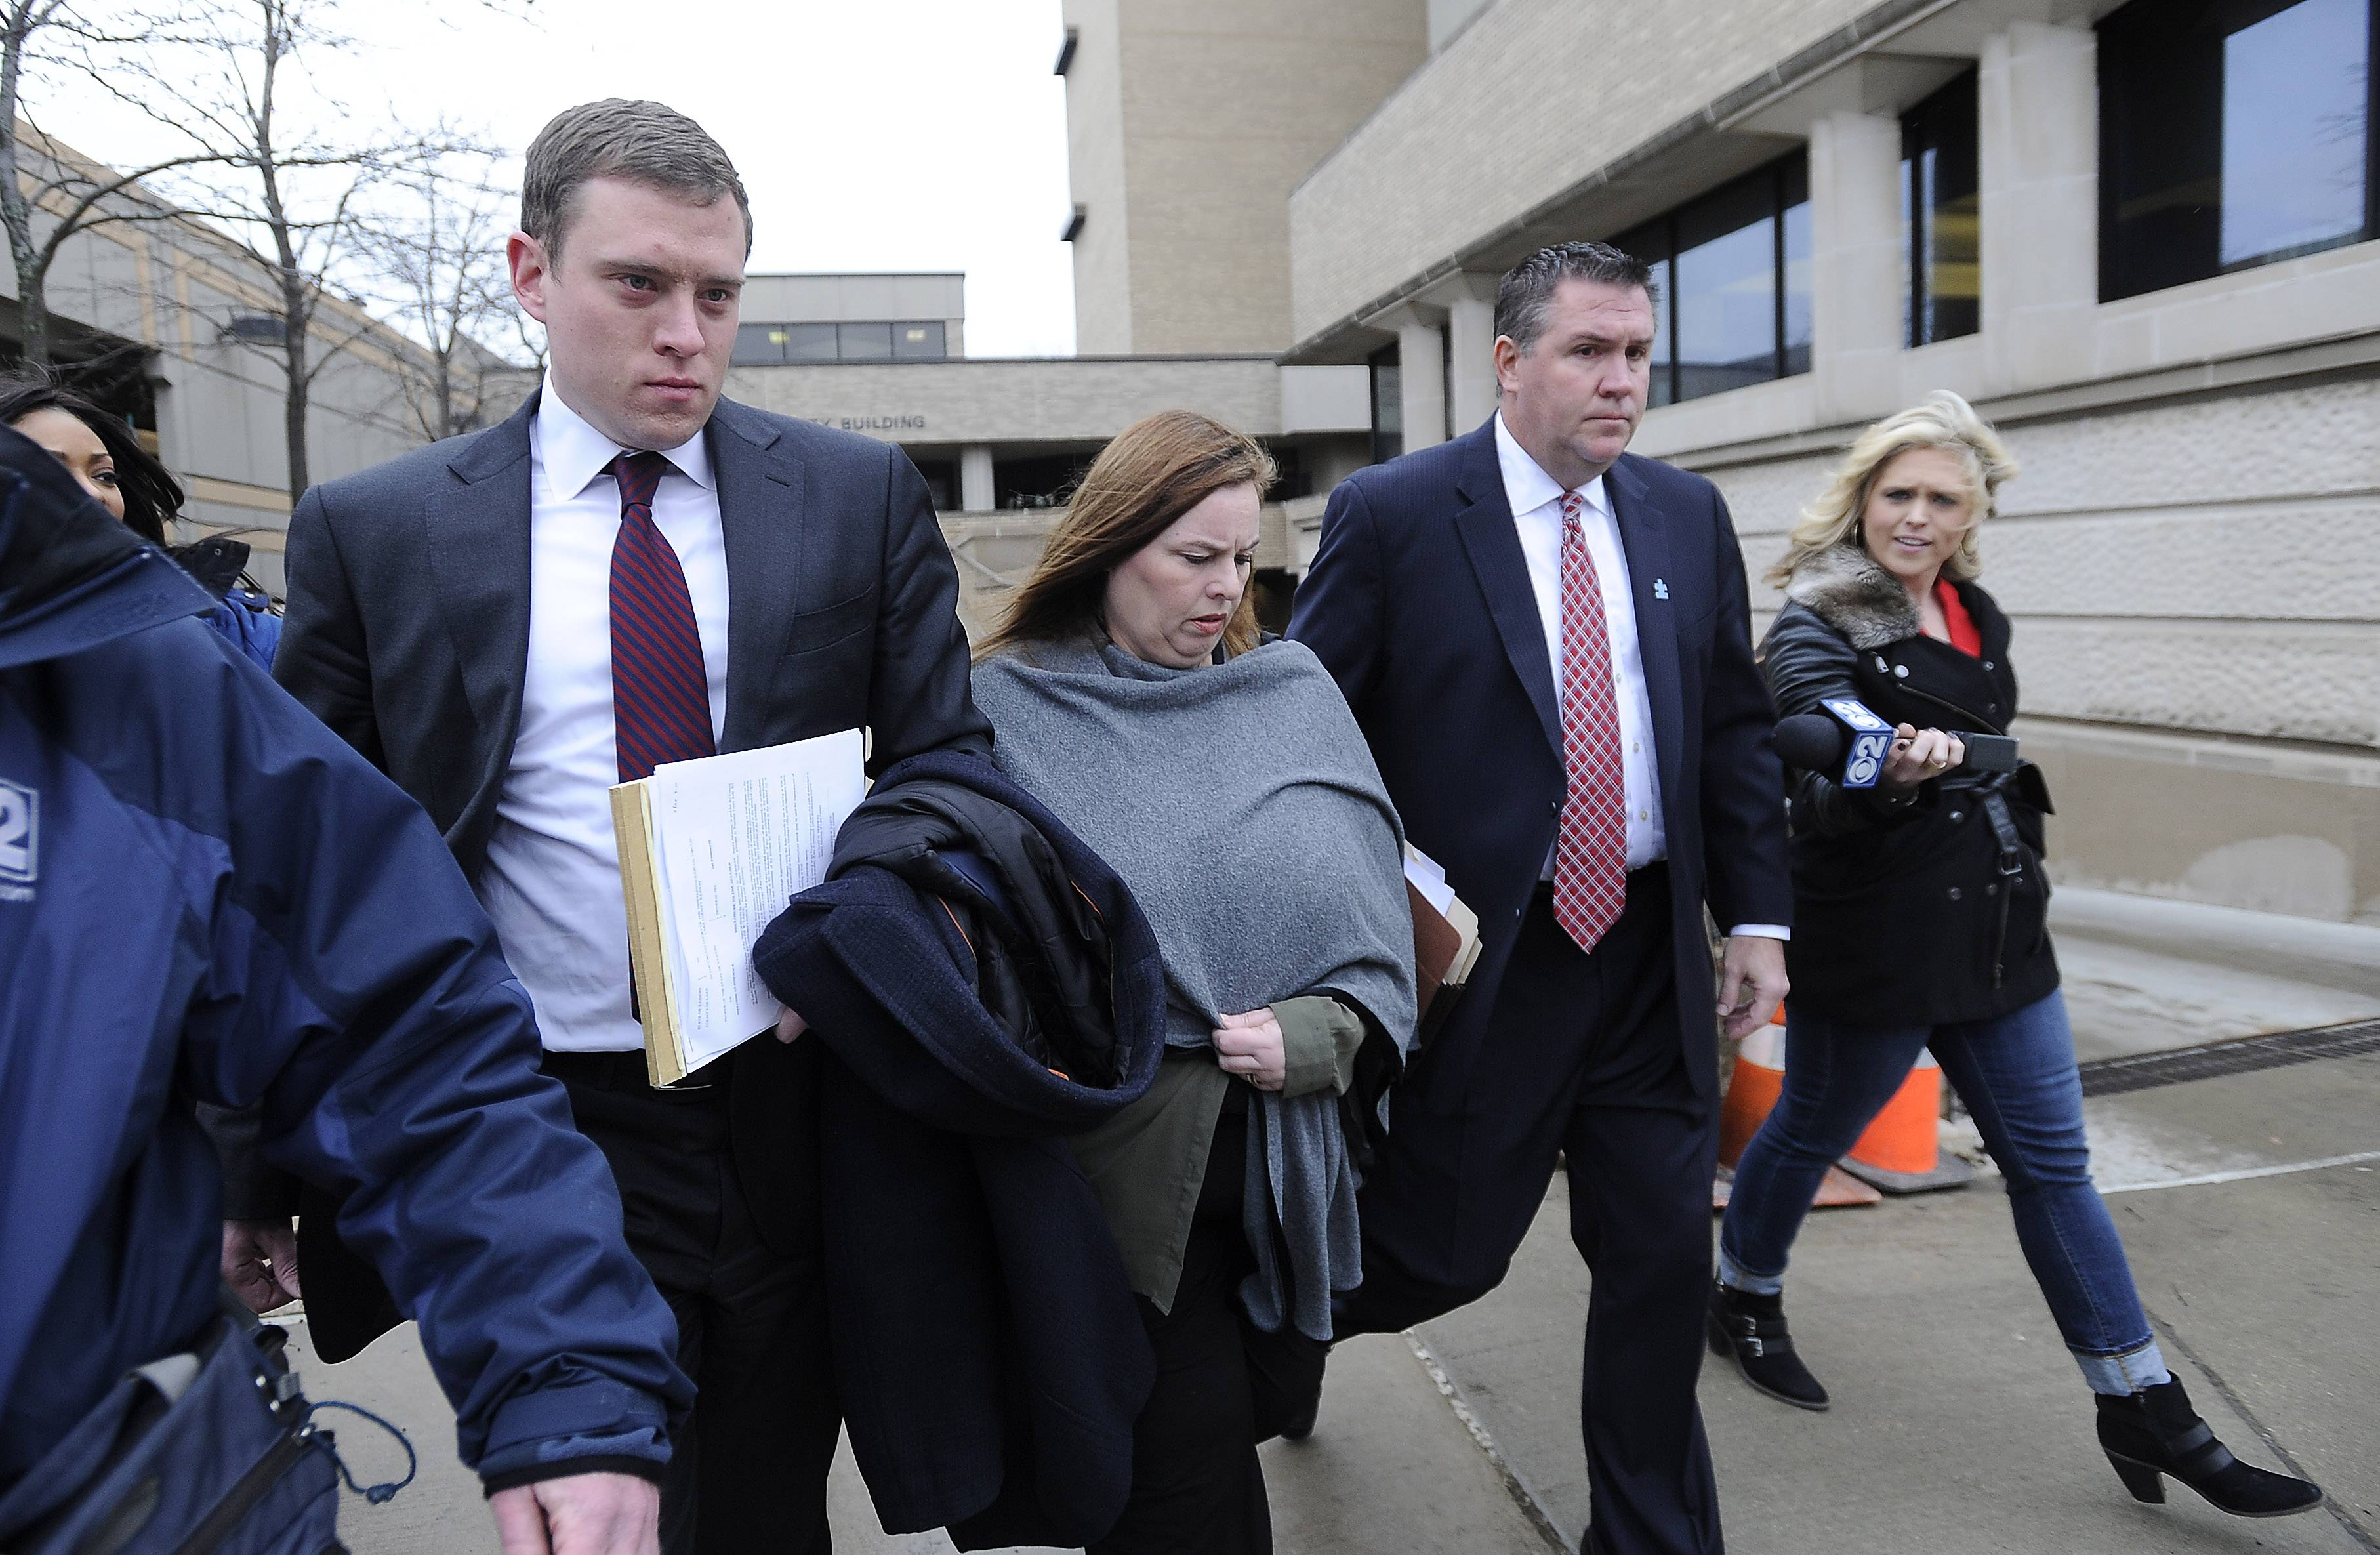 Melodie Gliniewicz and her lawyers leave the Lake County Courthouse in Waukegan on Wednesday.